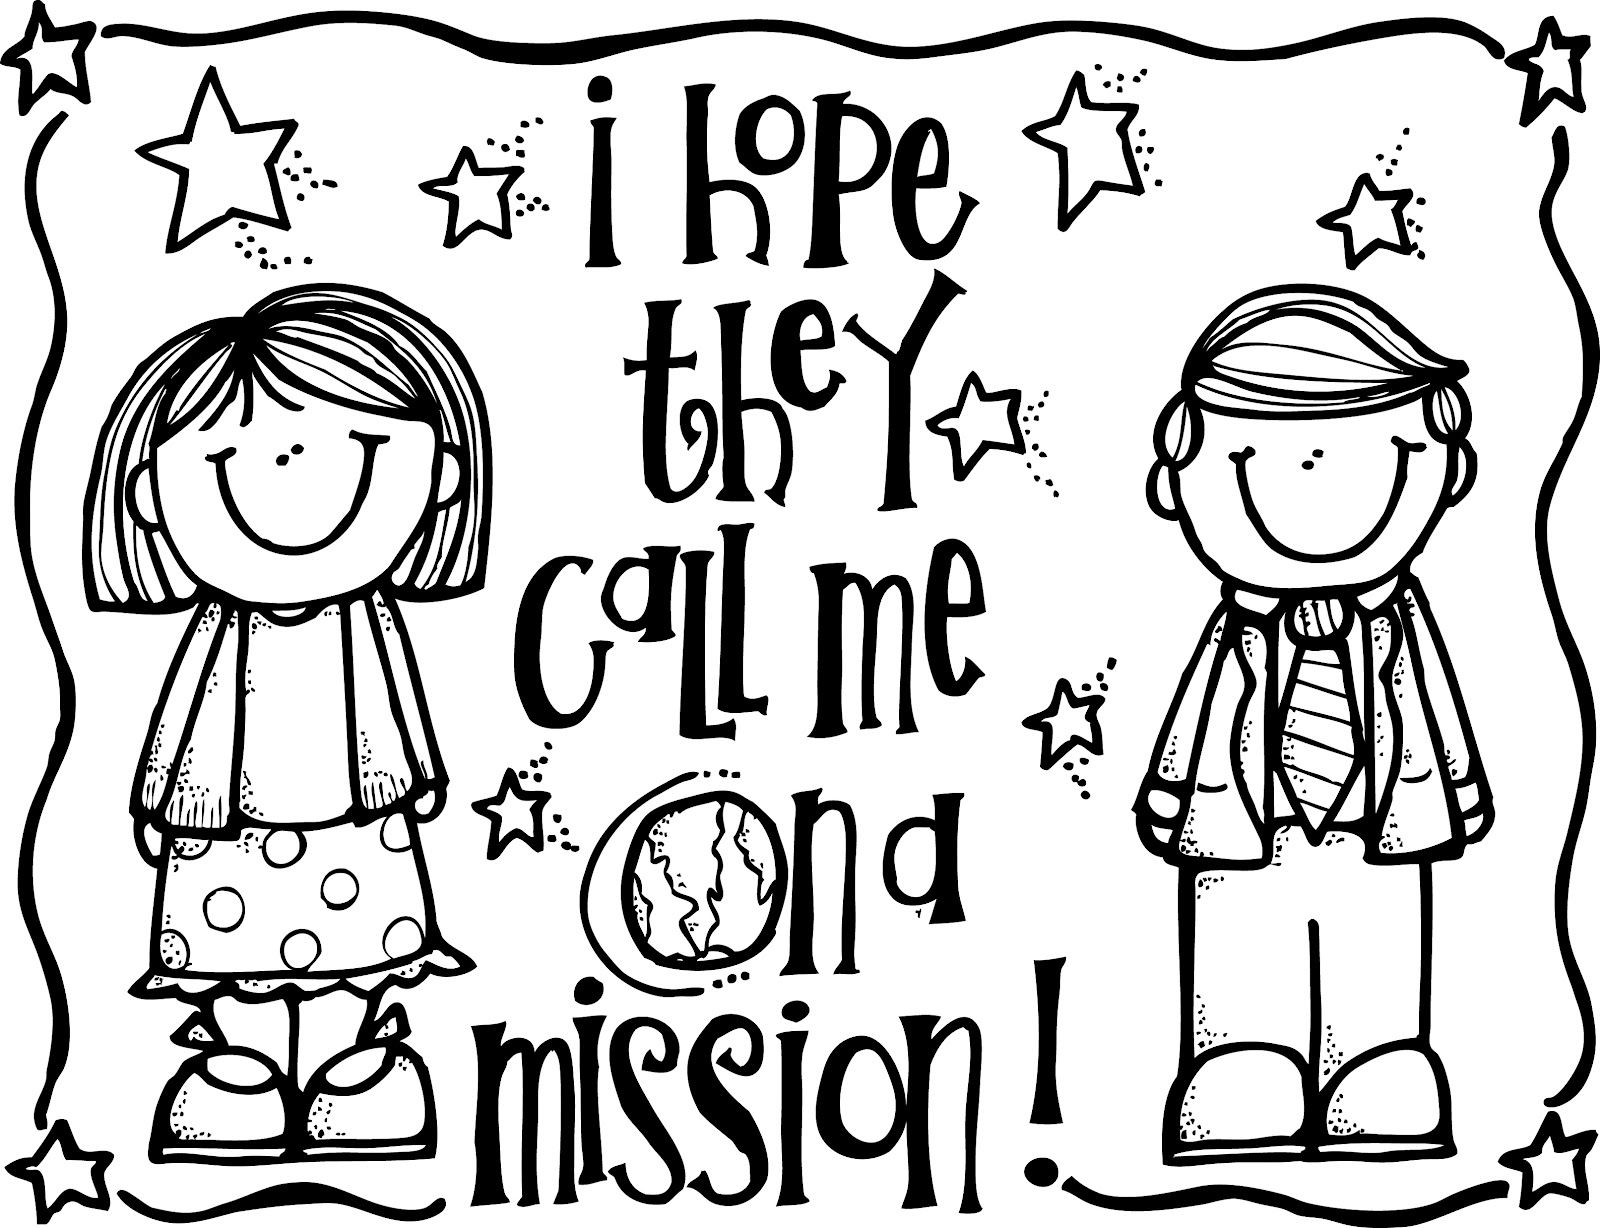 melonheadz lds illustrating i hope they call me on a mission rh pinterest com au lds clipart missionary name tag lds clipart missionary tags